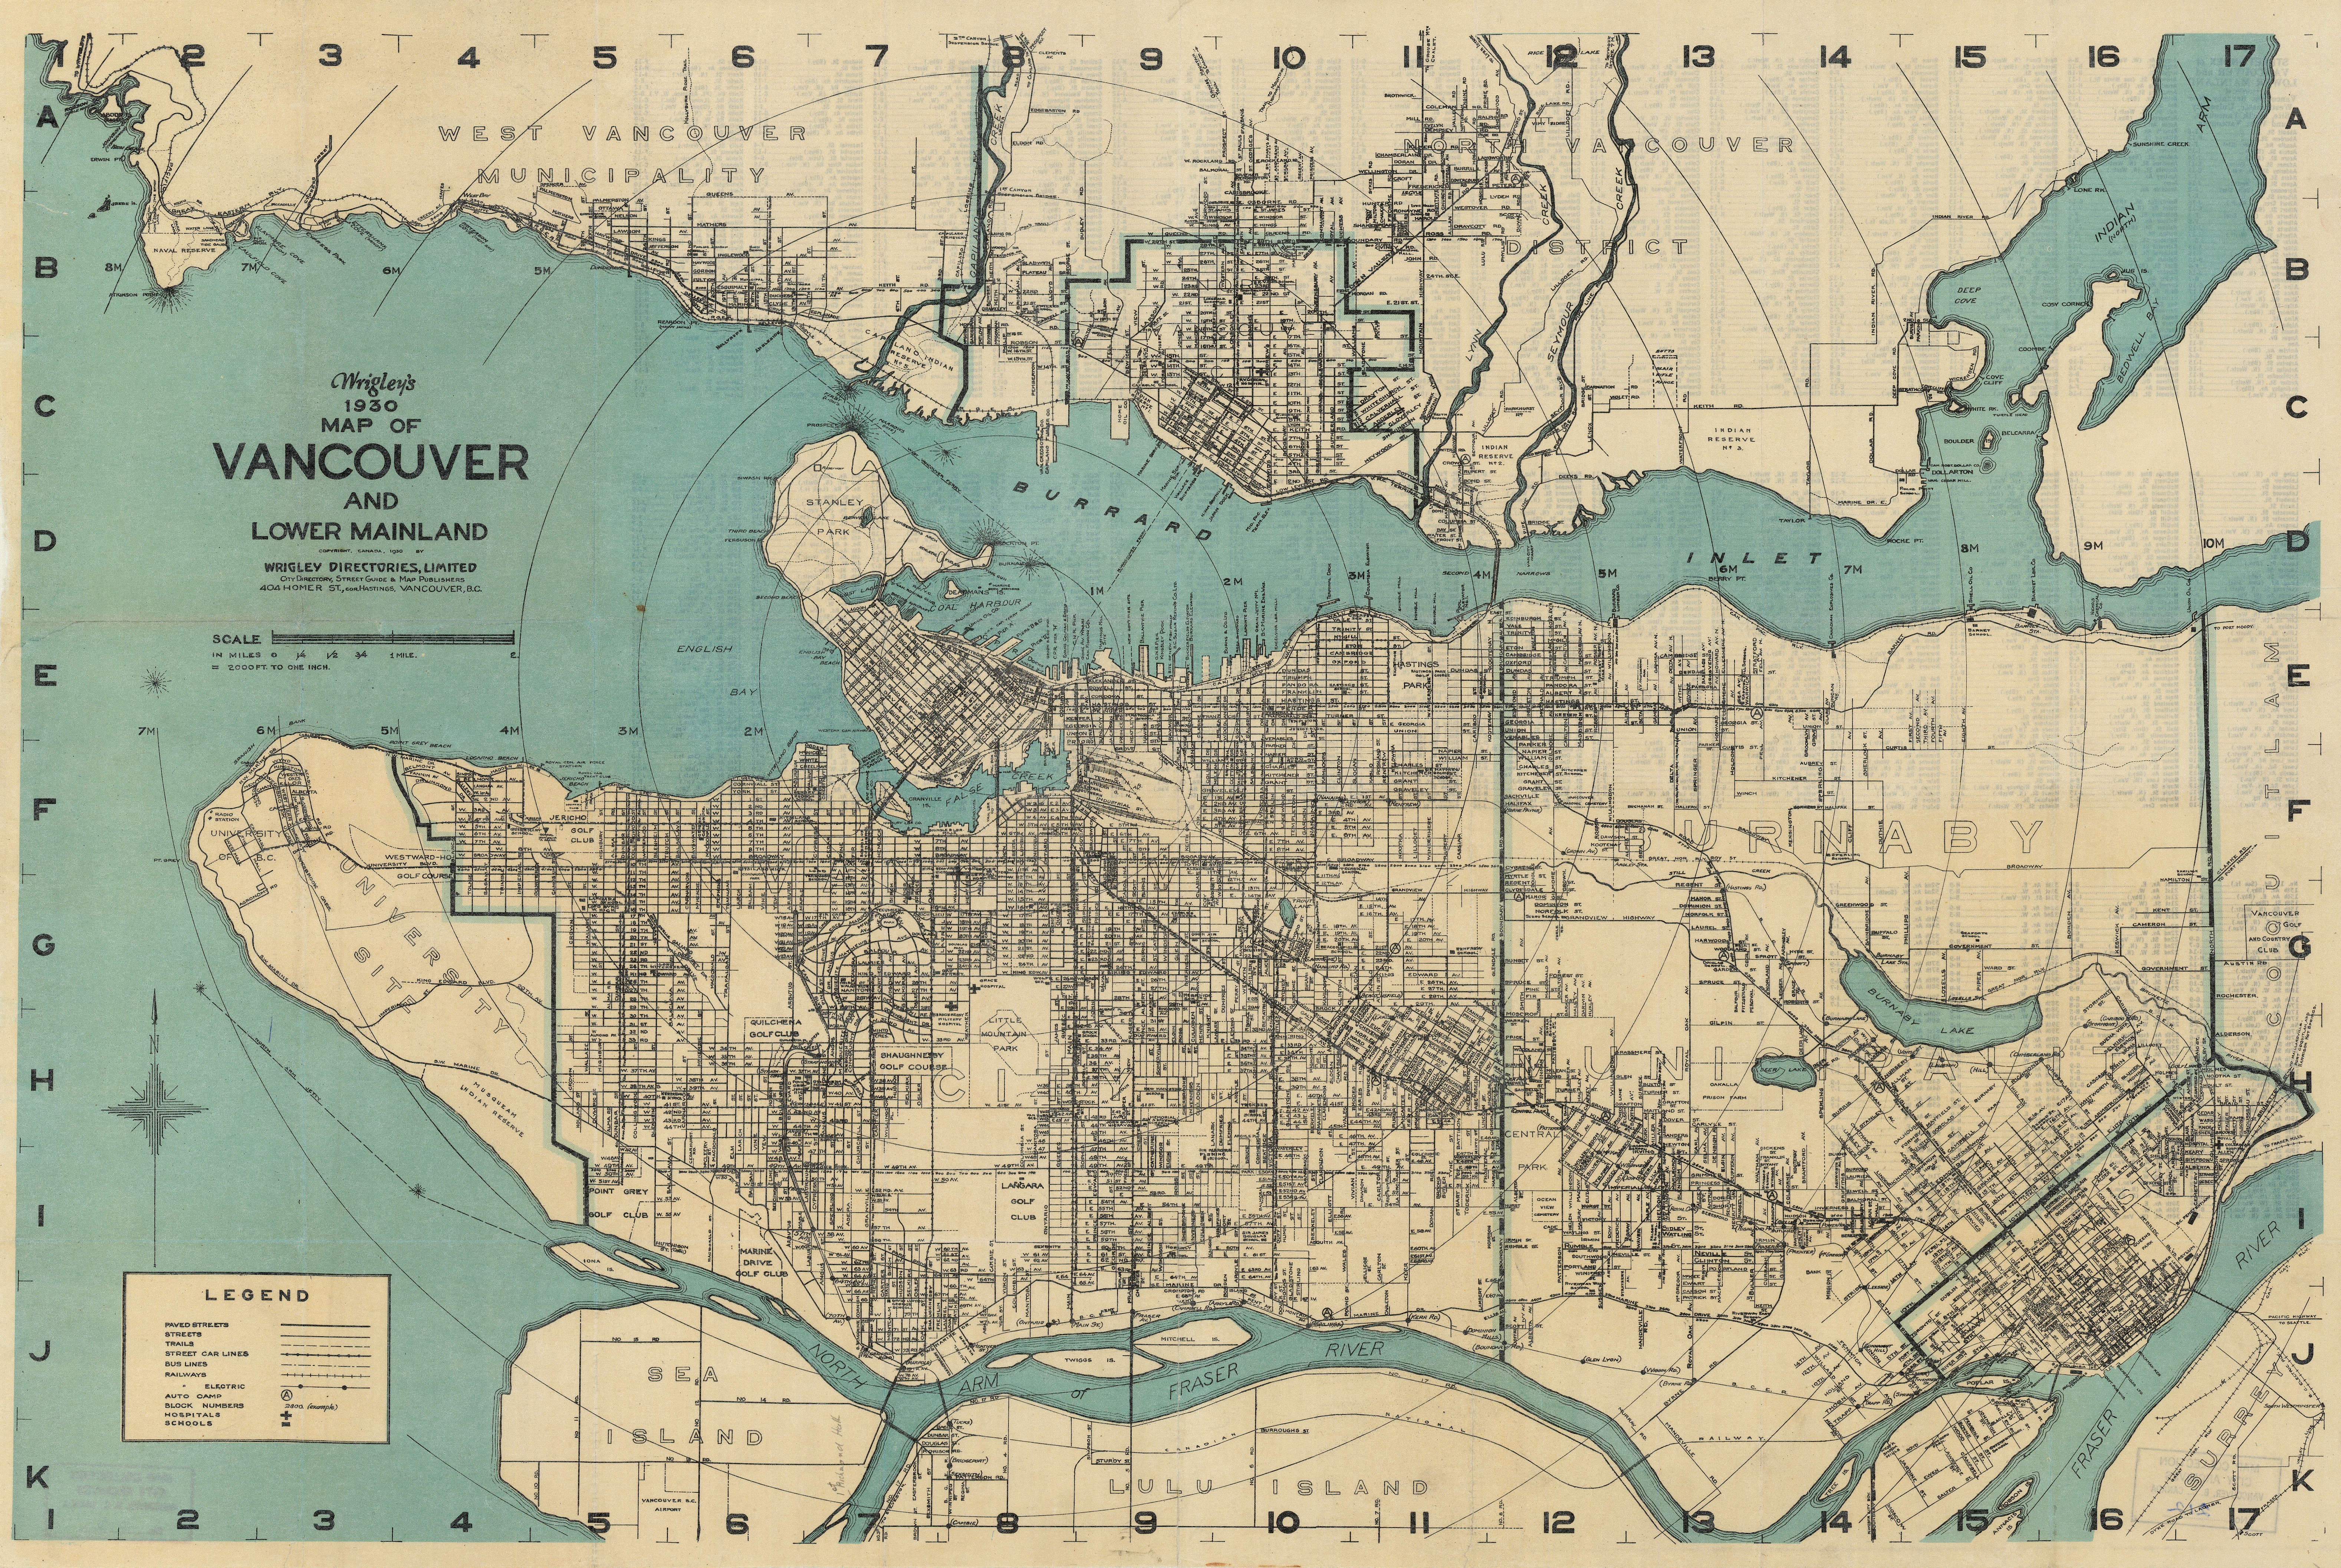 Wrigley S 1930 Map Of Vancouver And Lower Mainland City Of